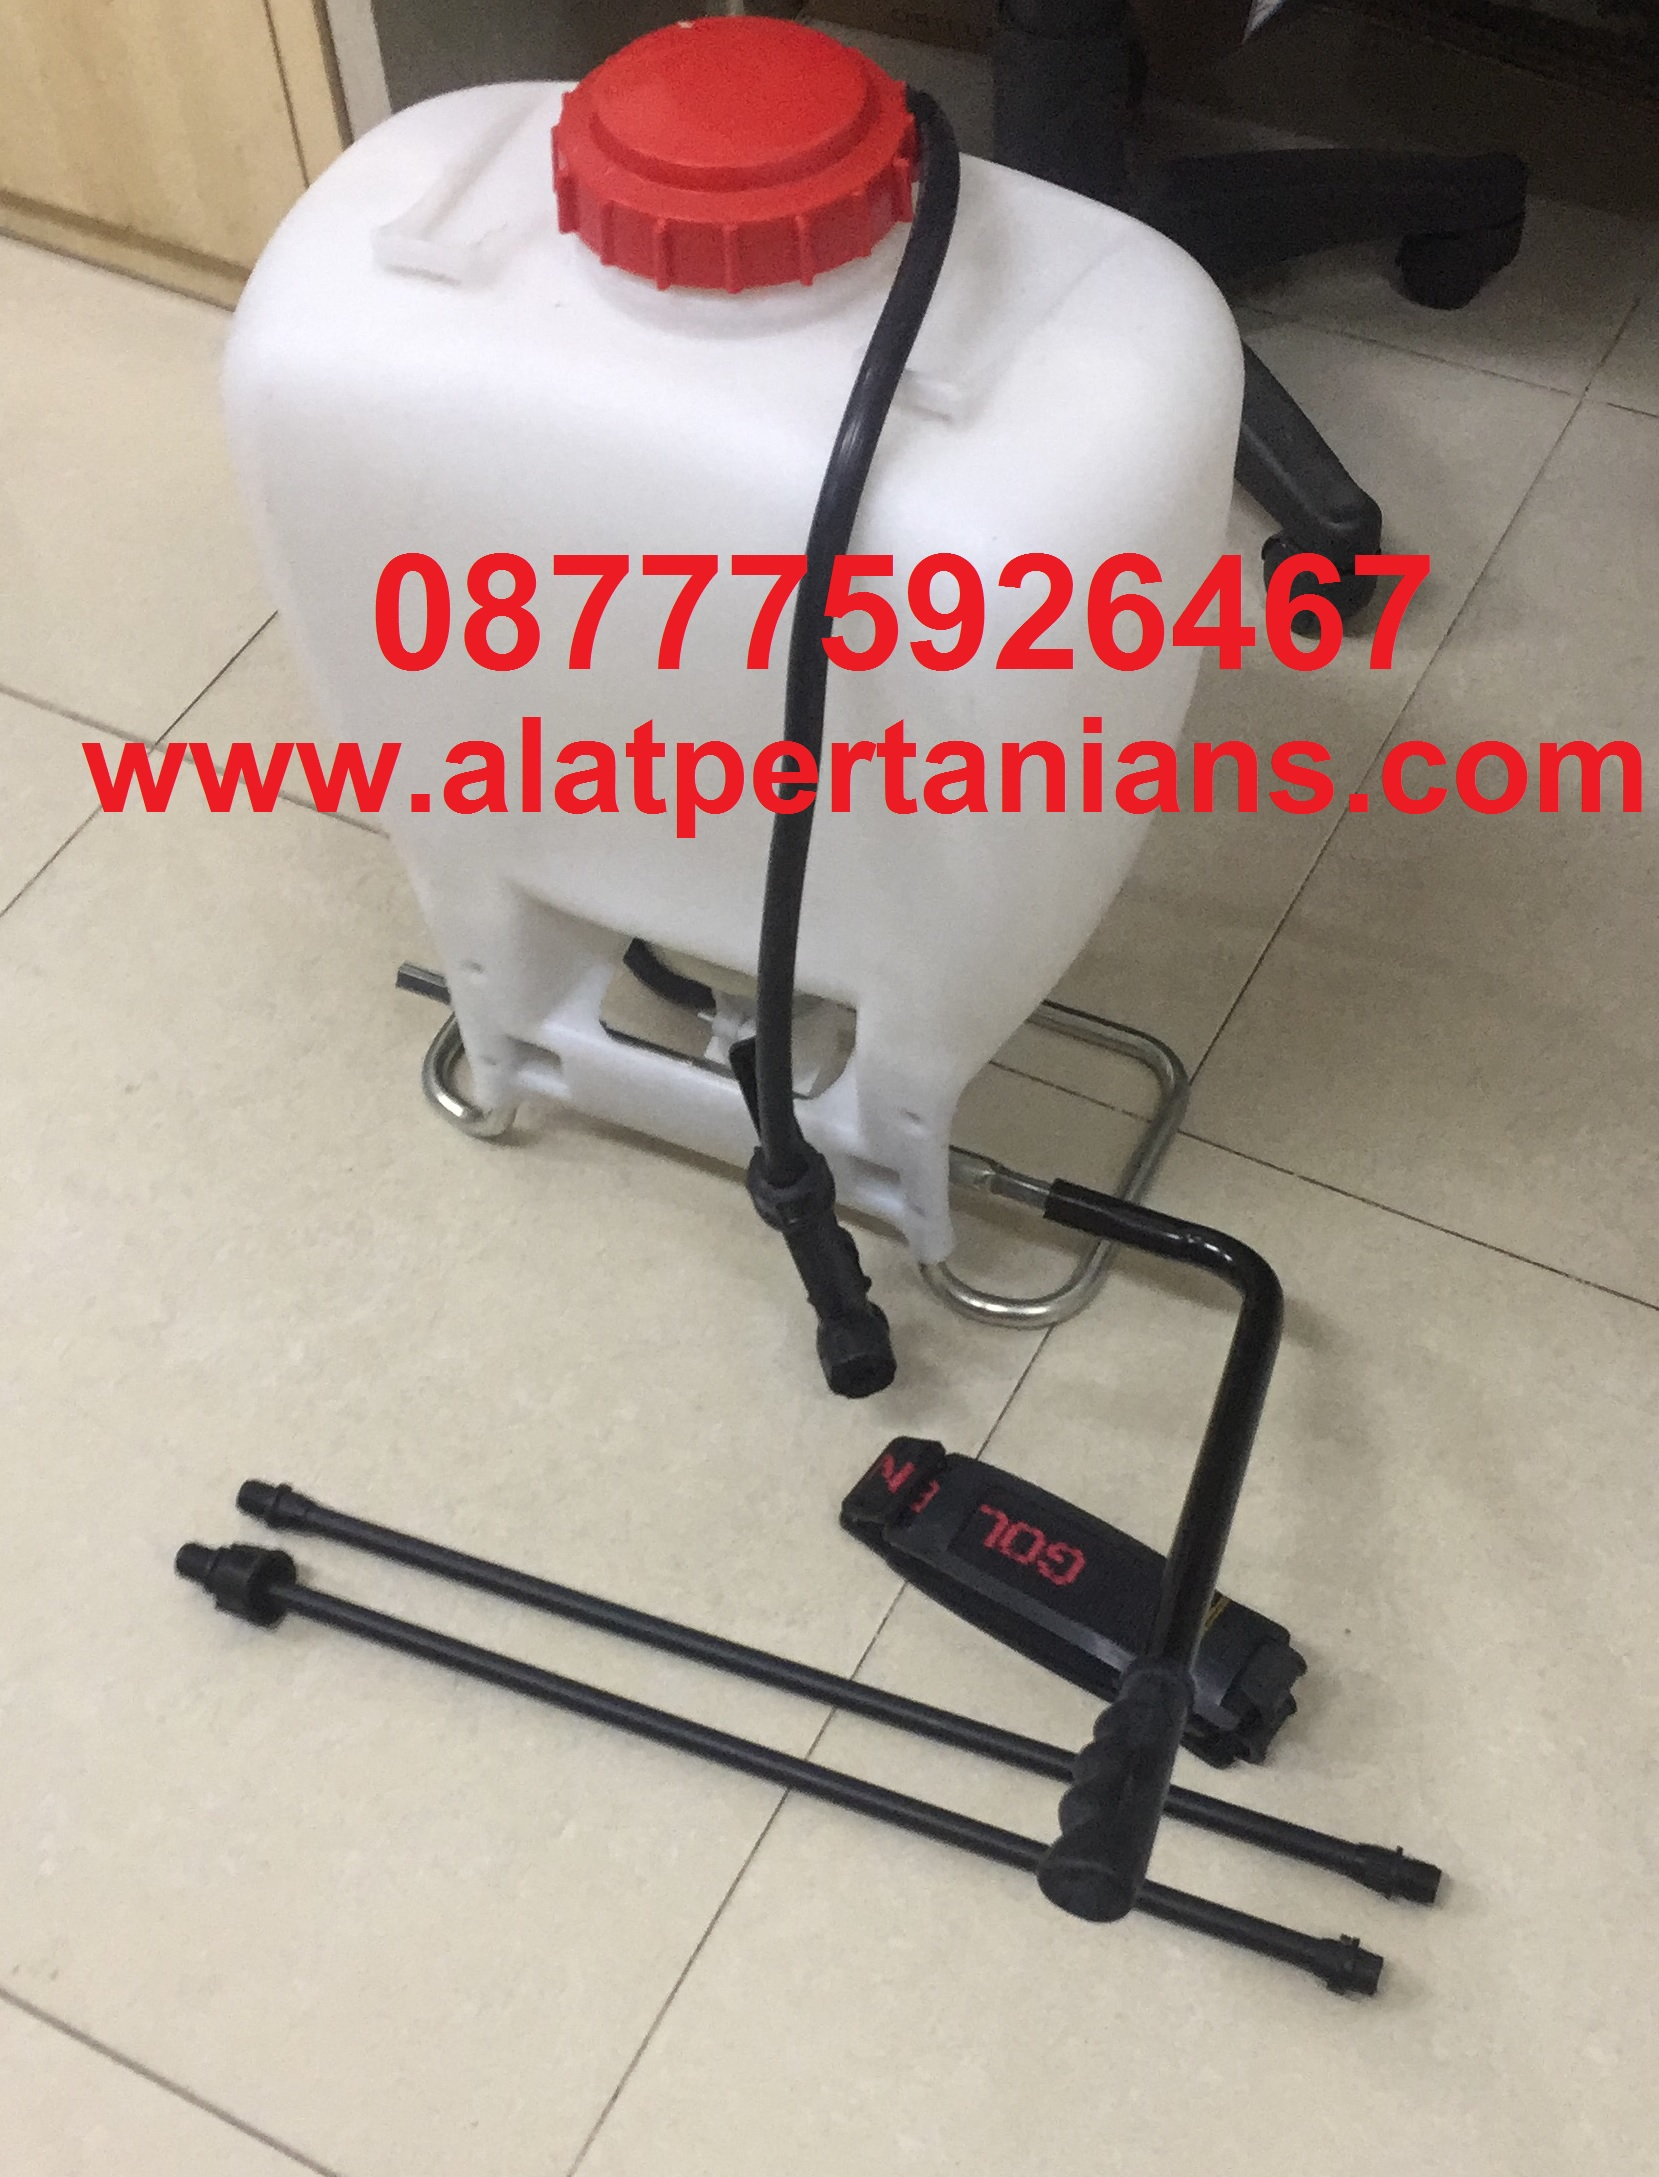 Alat Sprayer Manual